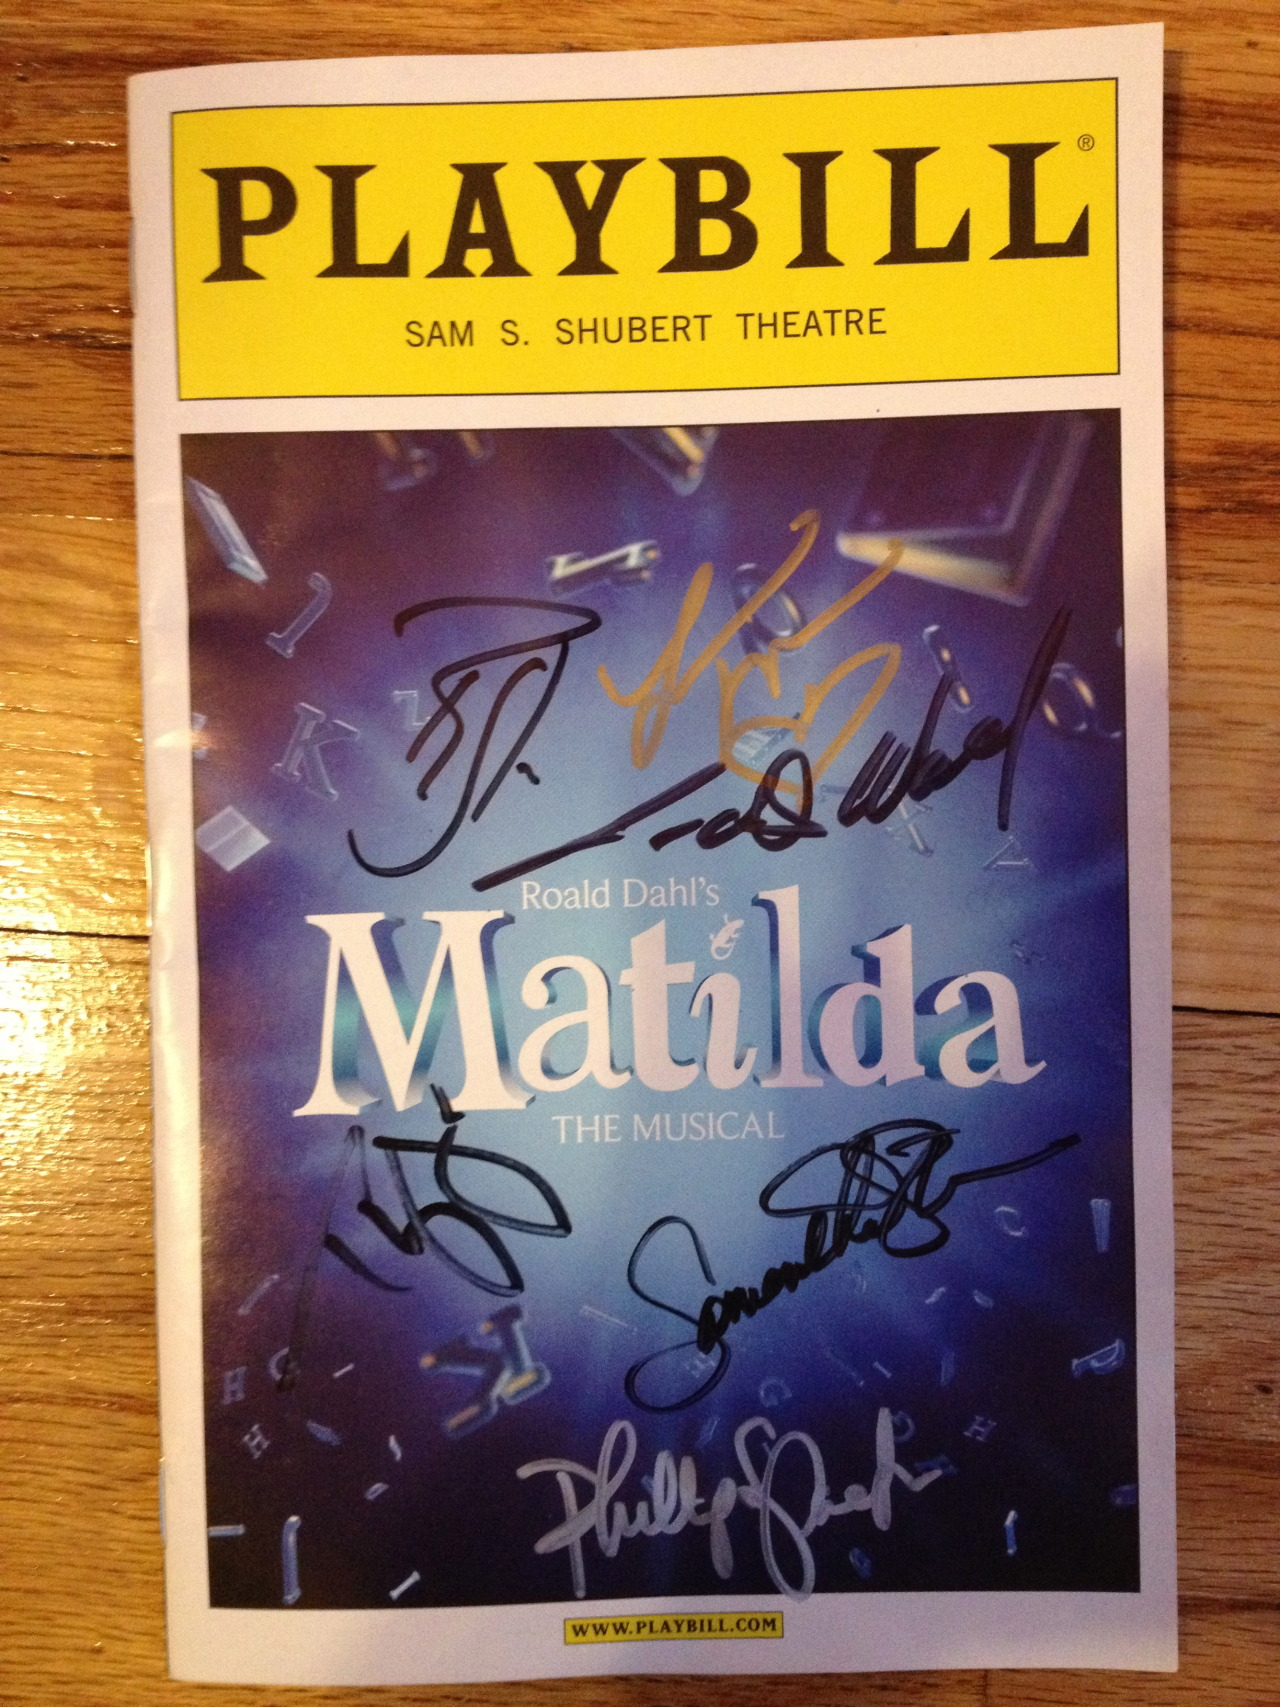 "So I saw Matilda the Musical last night and it was unbelievable!!!! I'd say a definite Tony-winner for this season!! I've been listening to the London Cast Recording on repeat for the past 3 months so yesterday could not come fast enough.  Our seats were in the front row of the mezzanine which were awesome and the set was outstanding. I'm calling it already as a Tony-winner for set design. It looked like a Scrabble board exploded! All the actors were fantastic, and I wasn't expecting anything less from a cast that included Bertie Carvel, Lauren Ward (both from the original London production), Taylor Trensch, Ryan Steele, Thayne Jasperson, etc. Oona Laurence went on last night as Matilda and she was absolutely perfect. She was so adorable and had an incredible little voice. The rest of the children in the cast were very talented as well, especially with choreography that I would say almost matches that of Newsies. My favorite numbers were ""Miracle,"" ""The Smell of Rebellion,"" and ""Revolting Children."" But really, who am I kidding? The entire show was amazing and I will definitely be back to see it again.  Not many people came out of the stage door afterwards. Probably because it was the first night after opening and it was raining so they wanted to get home. I also know that the children do not come out of the stage door. I did manage to catch Lesli Margherita (Mrs. Wormwood), Lauren Ward (Miss Honey), Samantha Sturm (The Acrobat), Phillip Spaeth (Rudolpho), Ryan Steele, and Thayne Jasperson (the last two of whom I'd been waiting to see since I'm obsessed with Newsies and have seen each of them in it 3 times).  Needless to say, I'll be seeing Matilda at least 3 more times. I'm hoping to catch a performance of each of the Matildas."